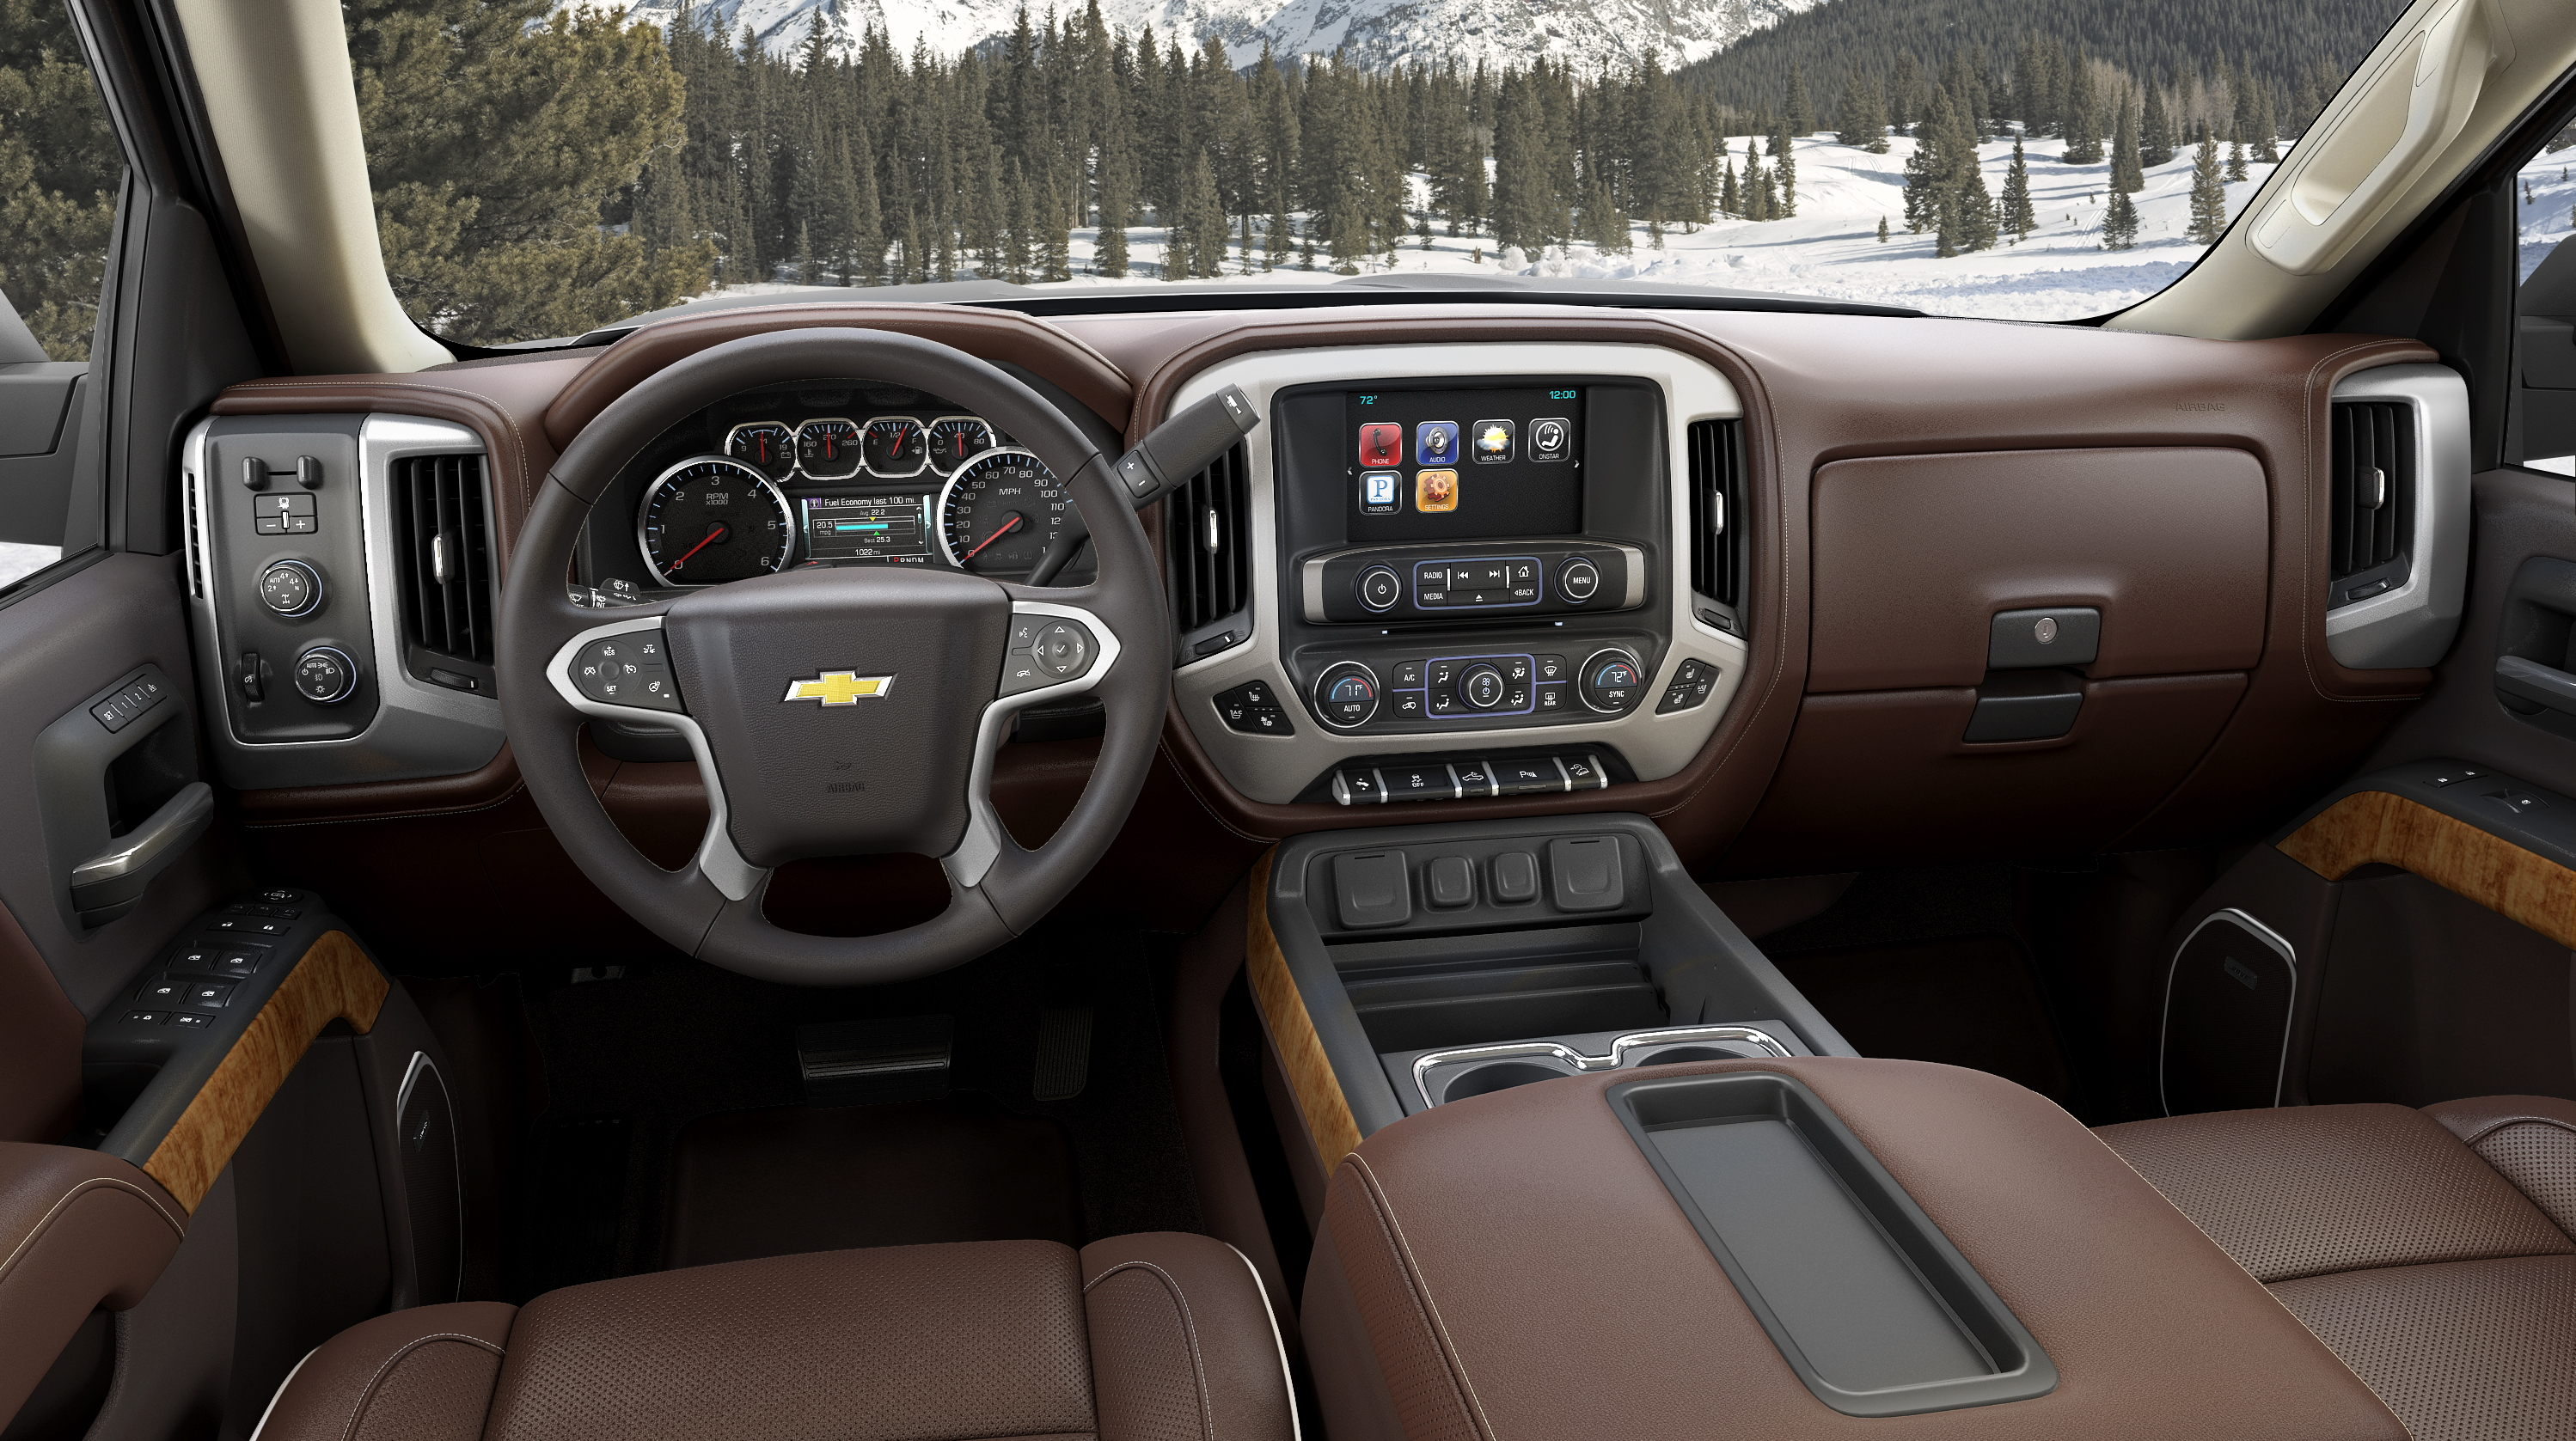 vehicles chevrolet country silverado photos galleries detail media images content silveradohighctry us states en pages high united pressroom